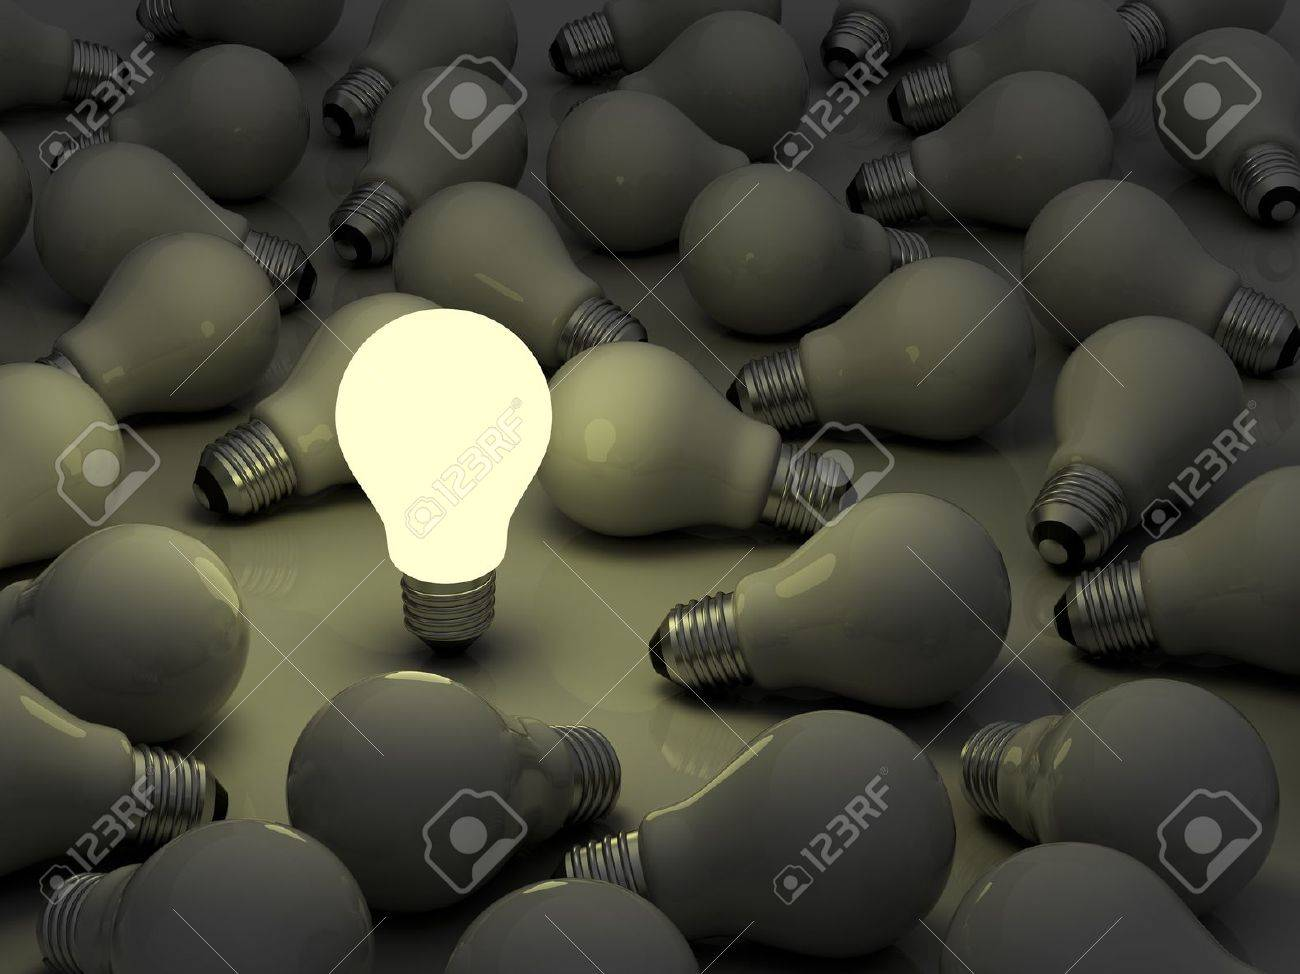 One glowing light bulb standing out from the unlit incandescent bulbs Stock Photo - 14821616